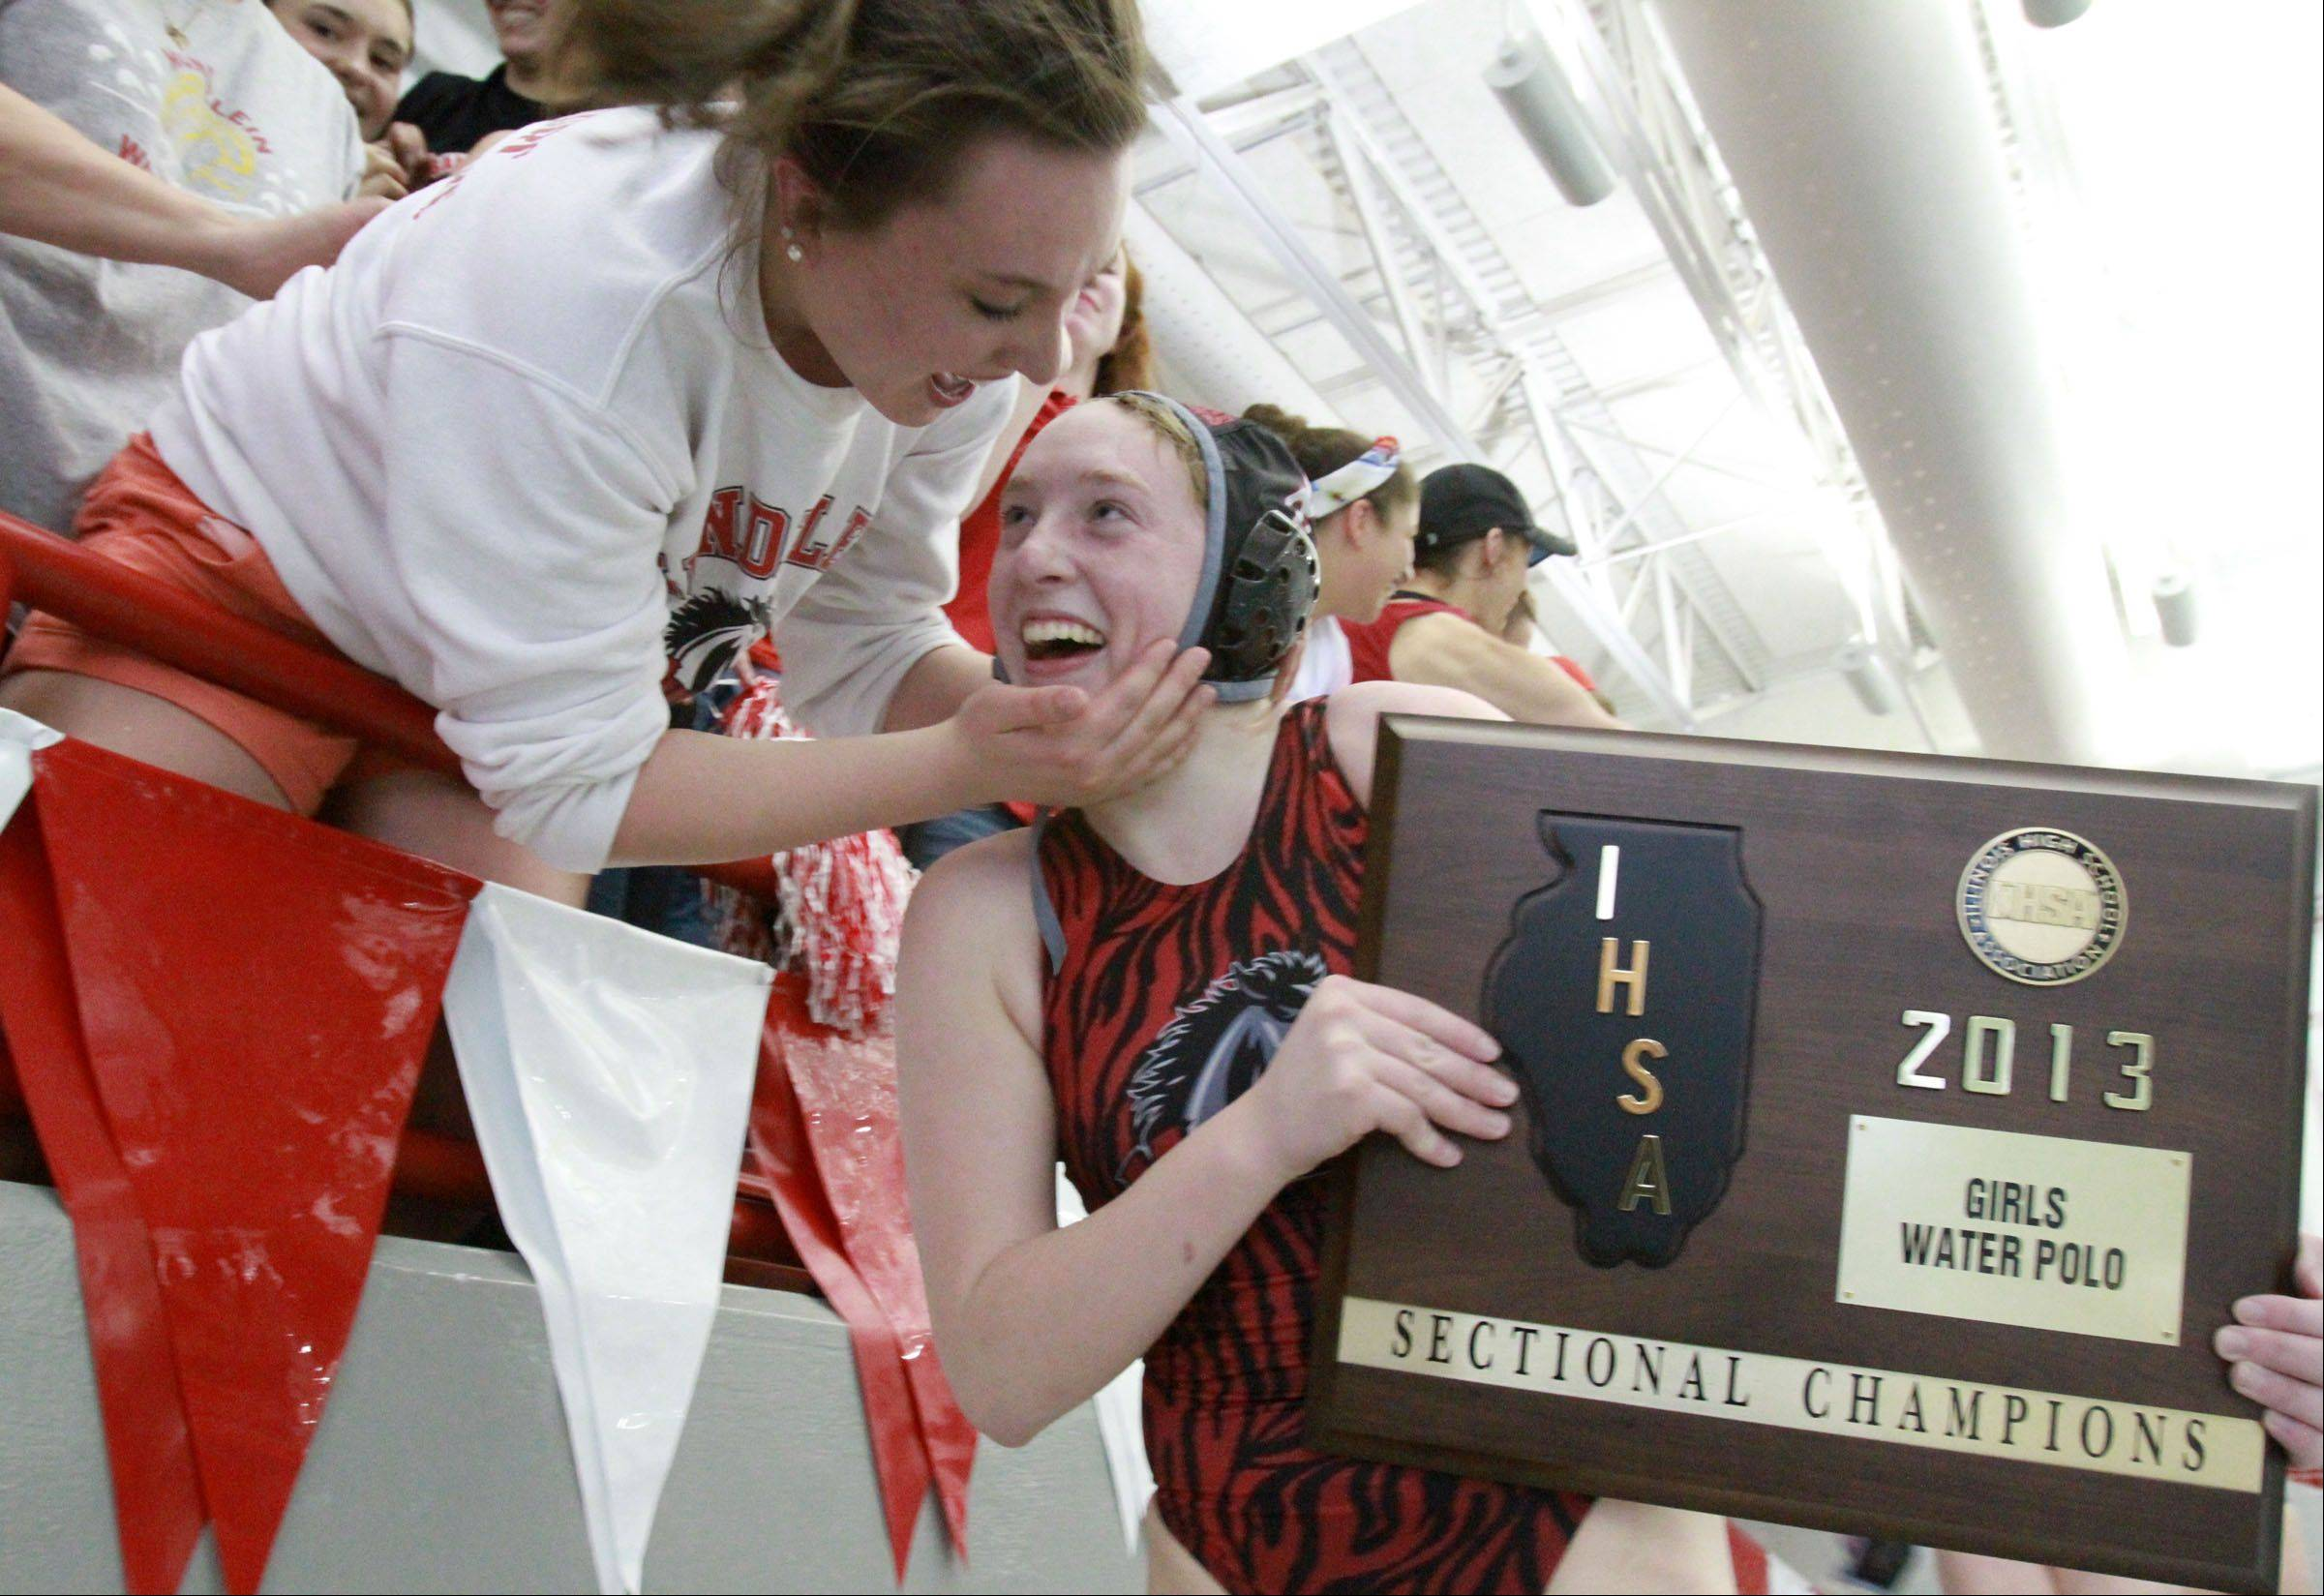 Mundelein's Allie Boothe, holding the sectional championship plaque, gets hugs from her sister Amanda after the Mustangs' 6-5 win over Stevenson in Mundelein sectional championship game Saturday.